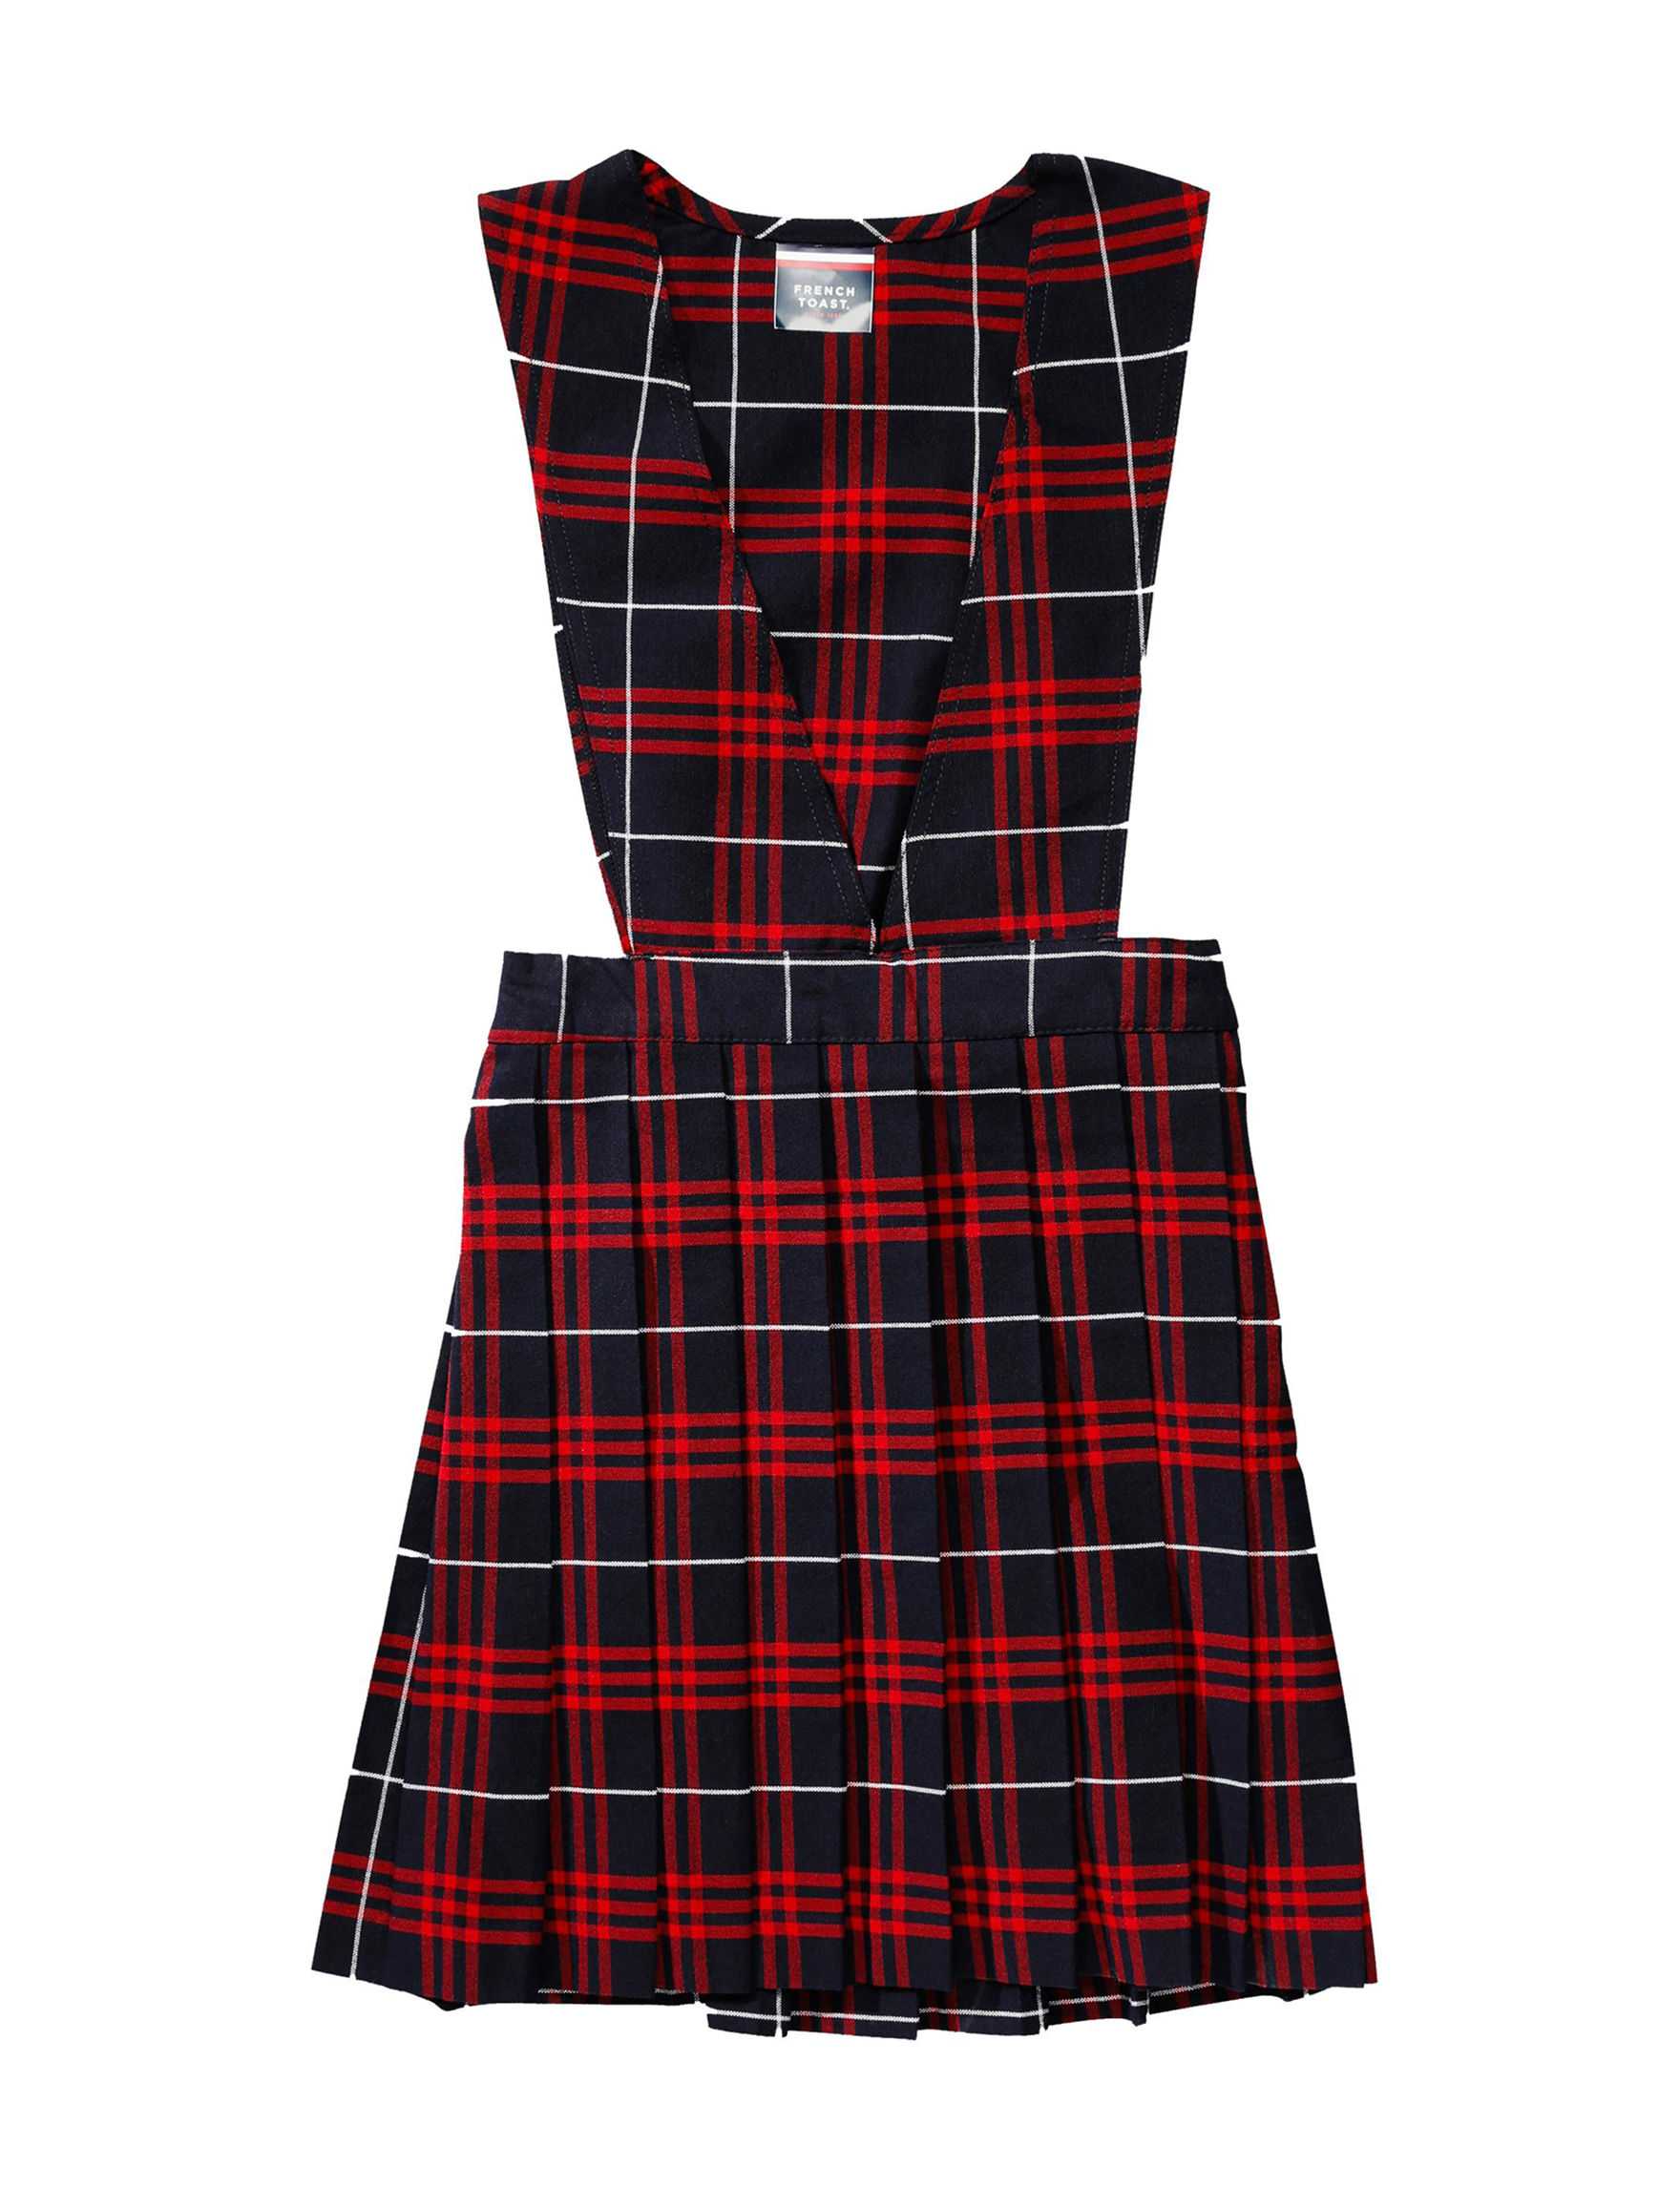 French Toast Navy/Red Plaid